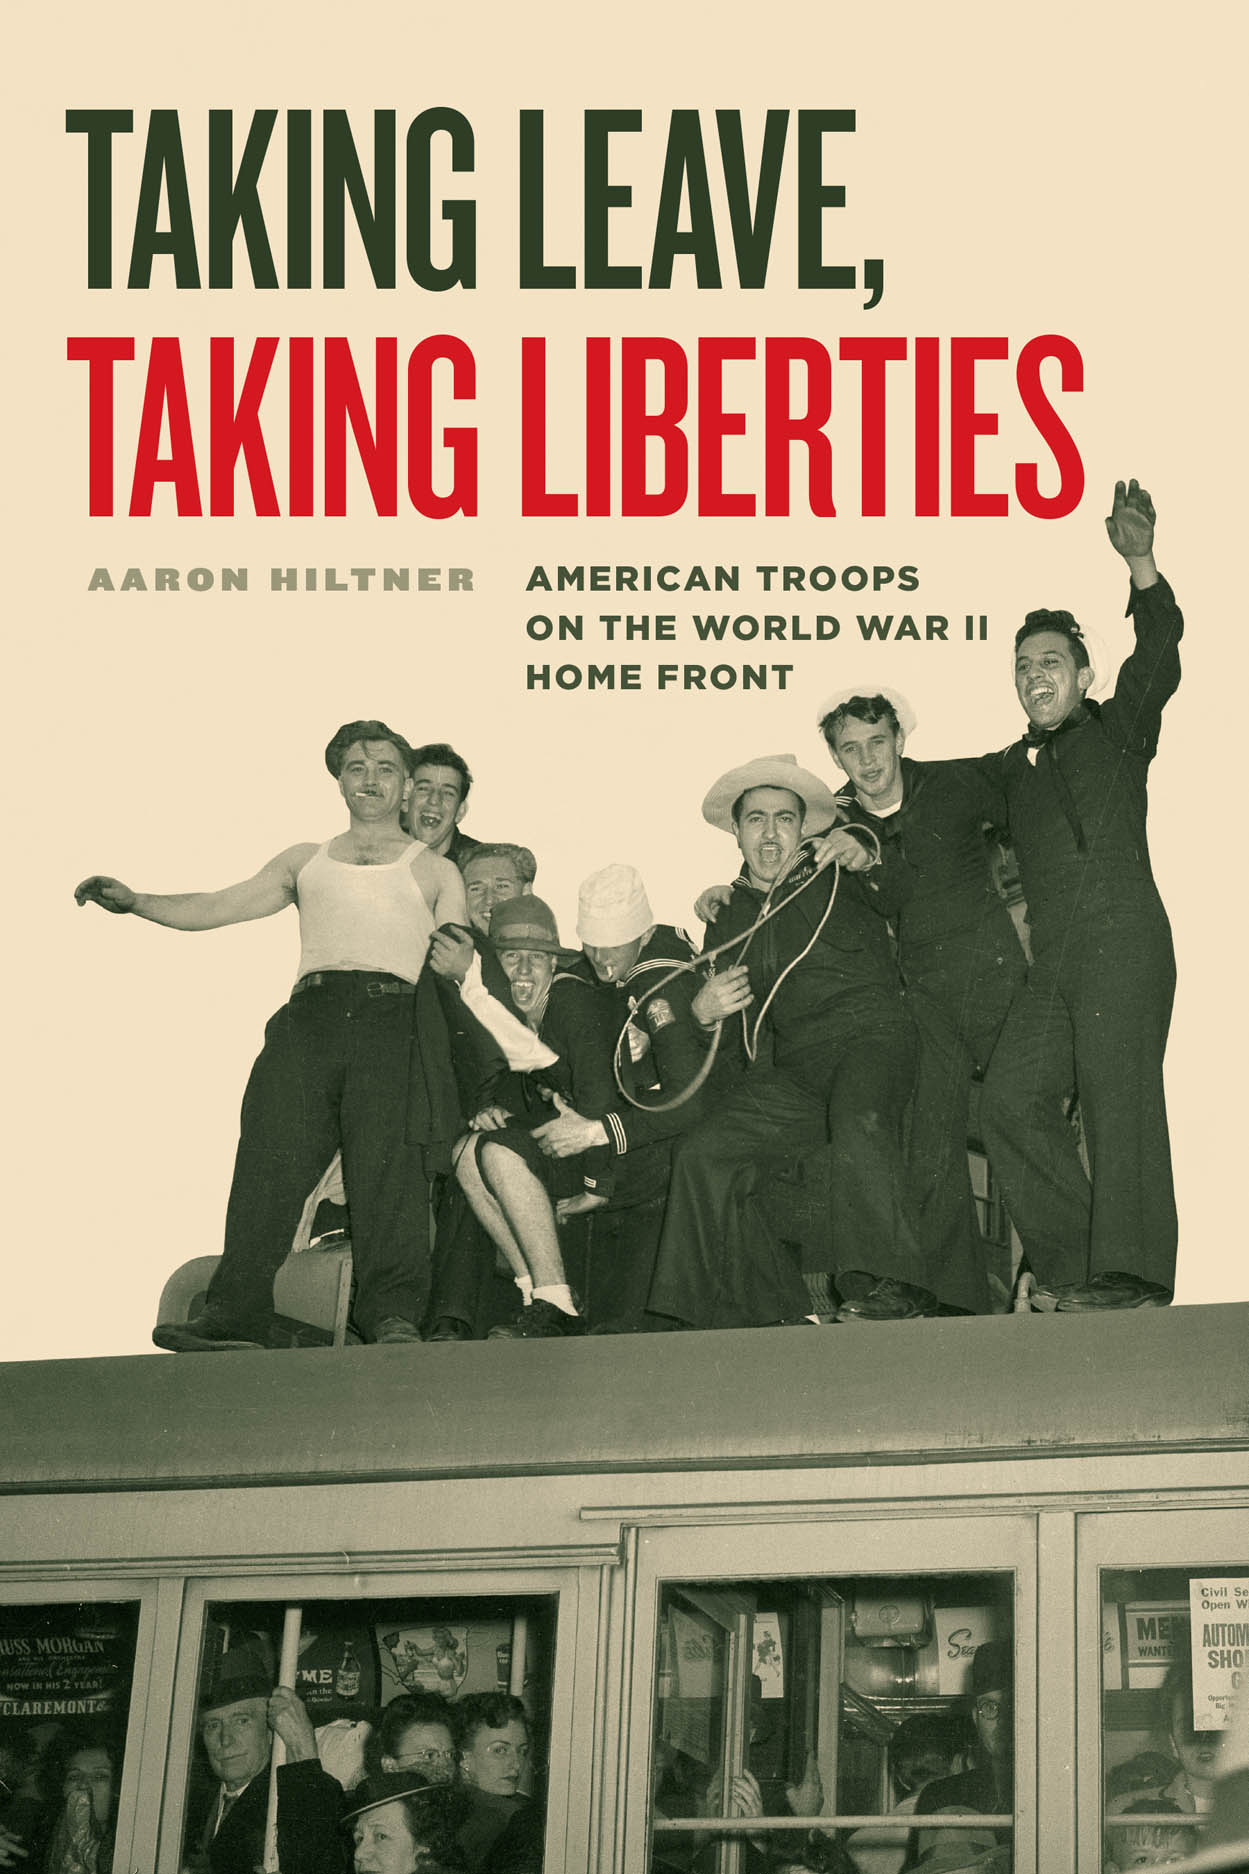 Taking Leave, Taking Liberties: American Troops on the World War II Home Front